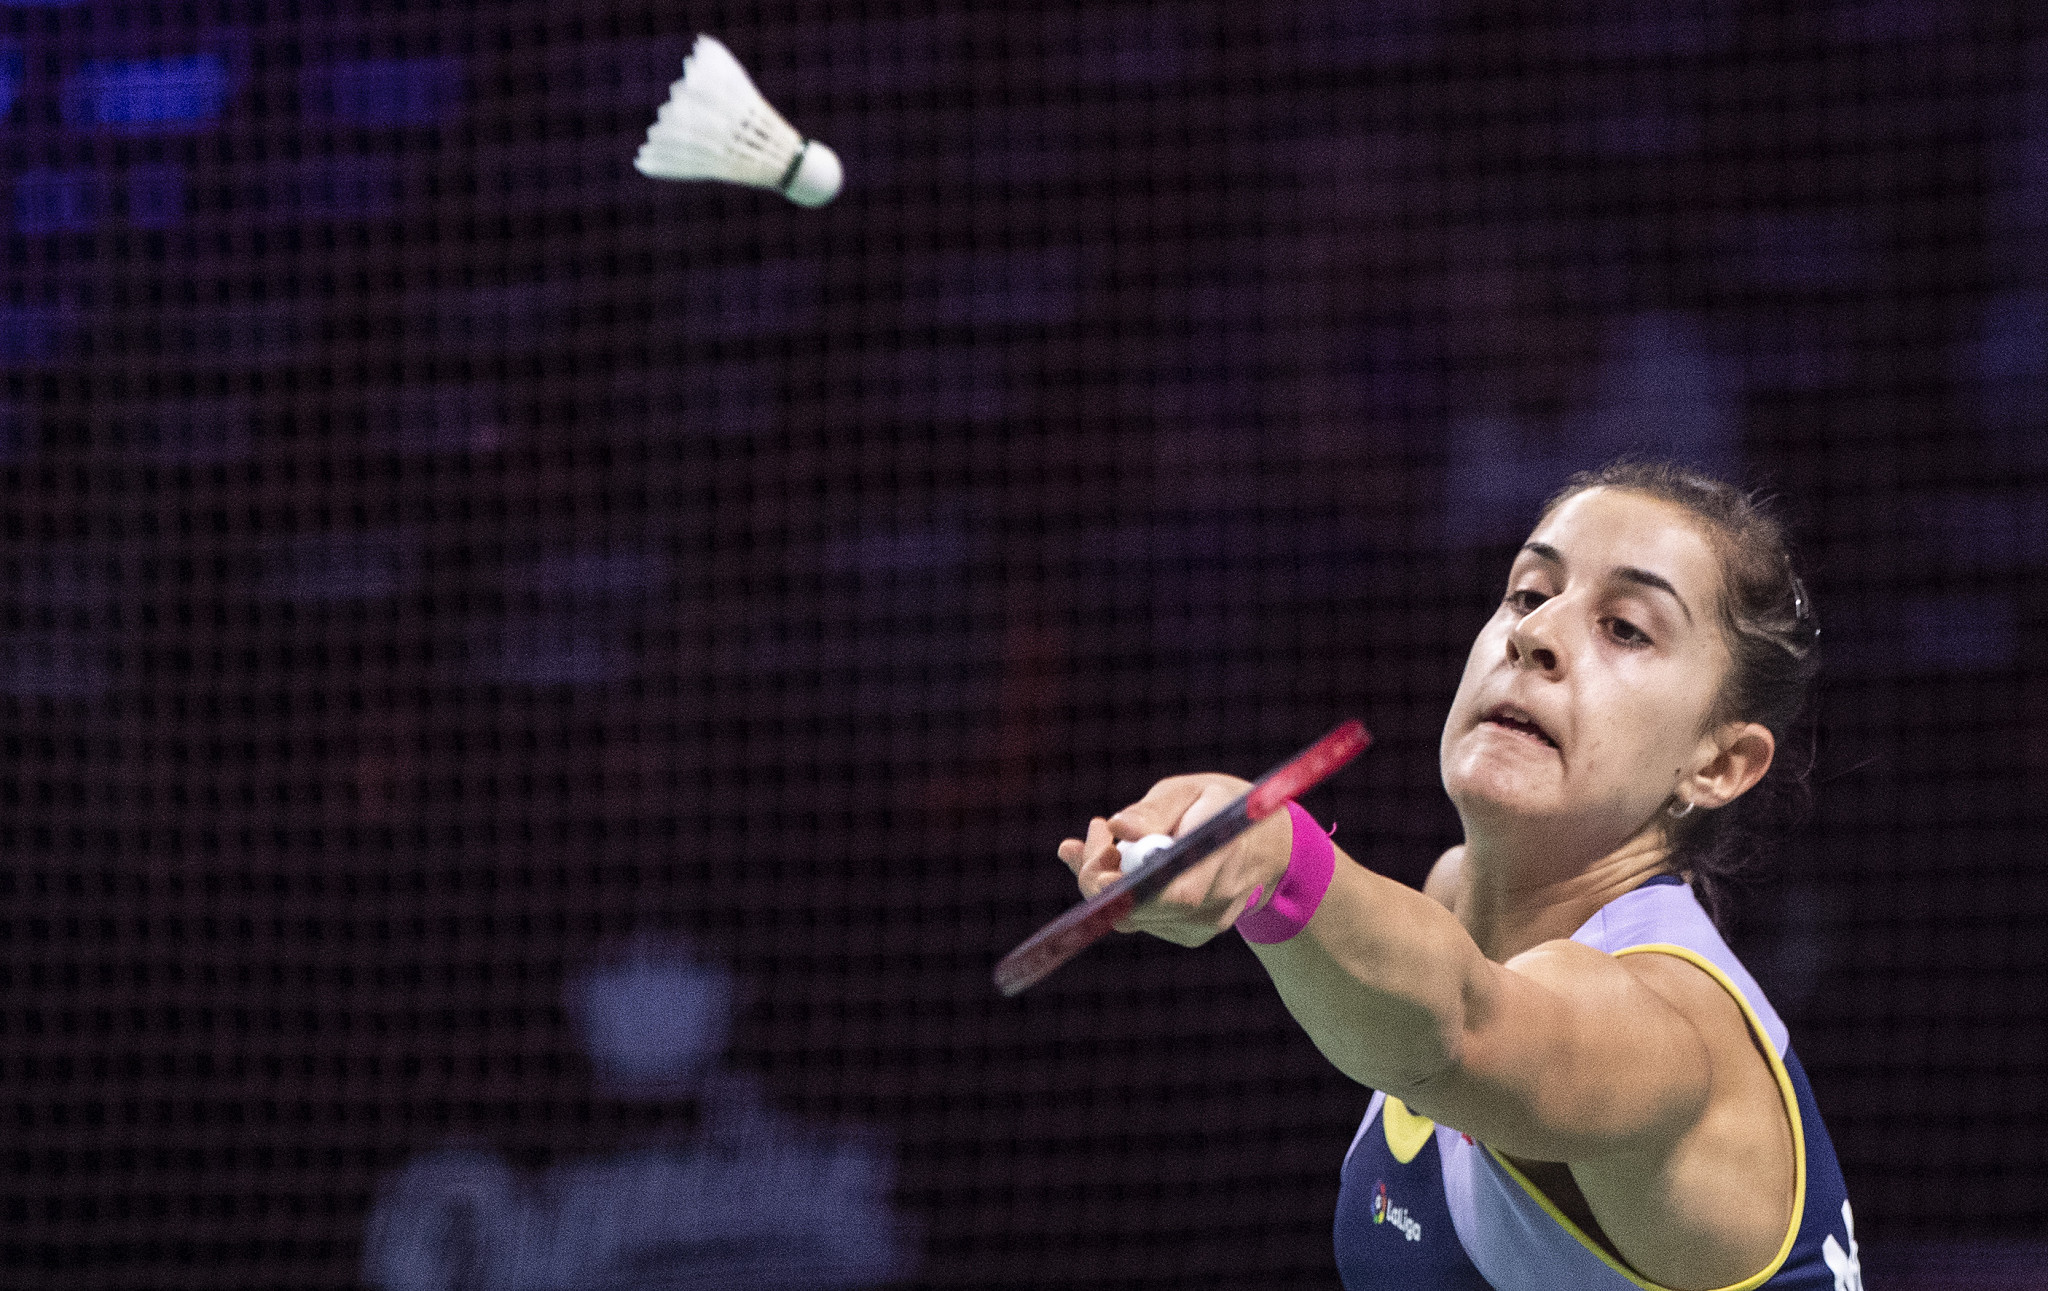 Spain's Olympic champion Carolina Marin won the BWF women's title in Lucknow today ©Getty Images